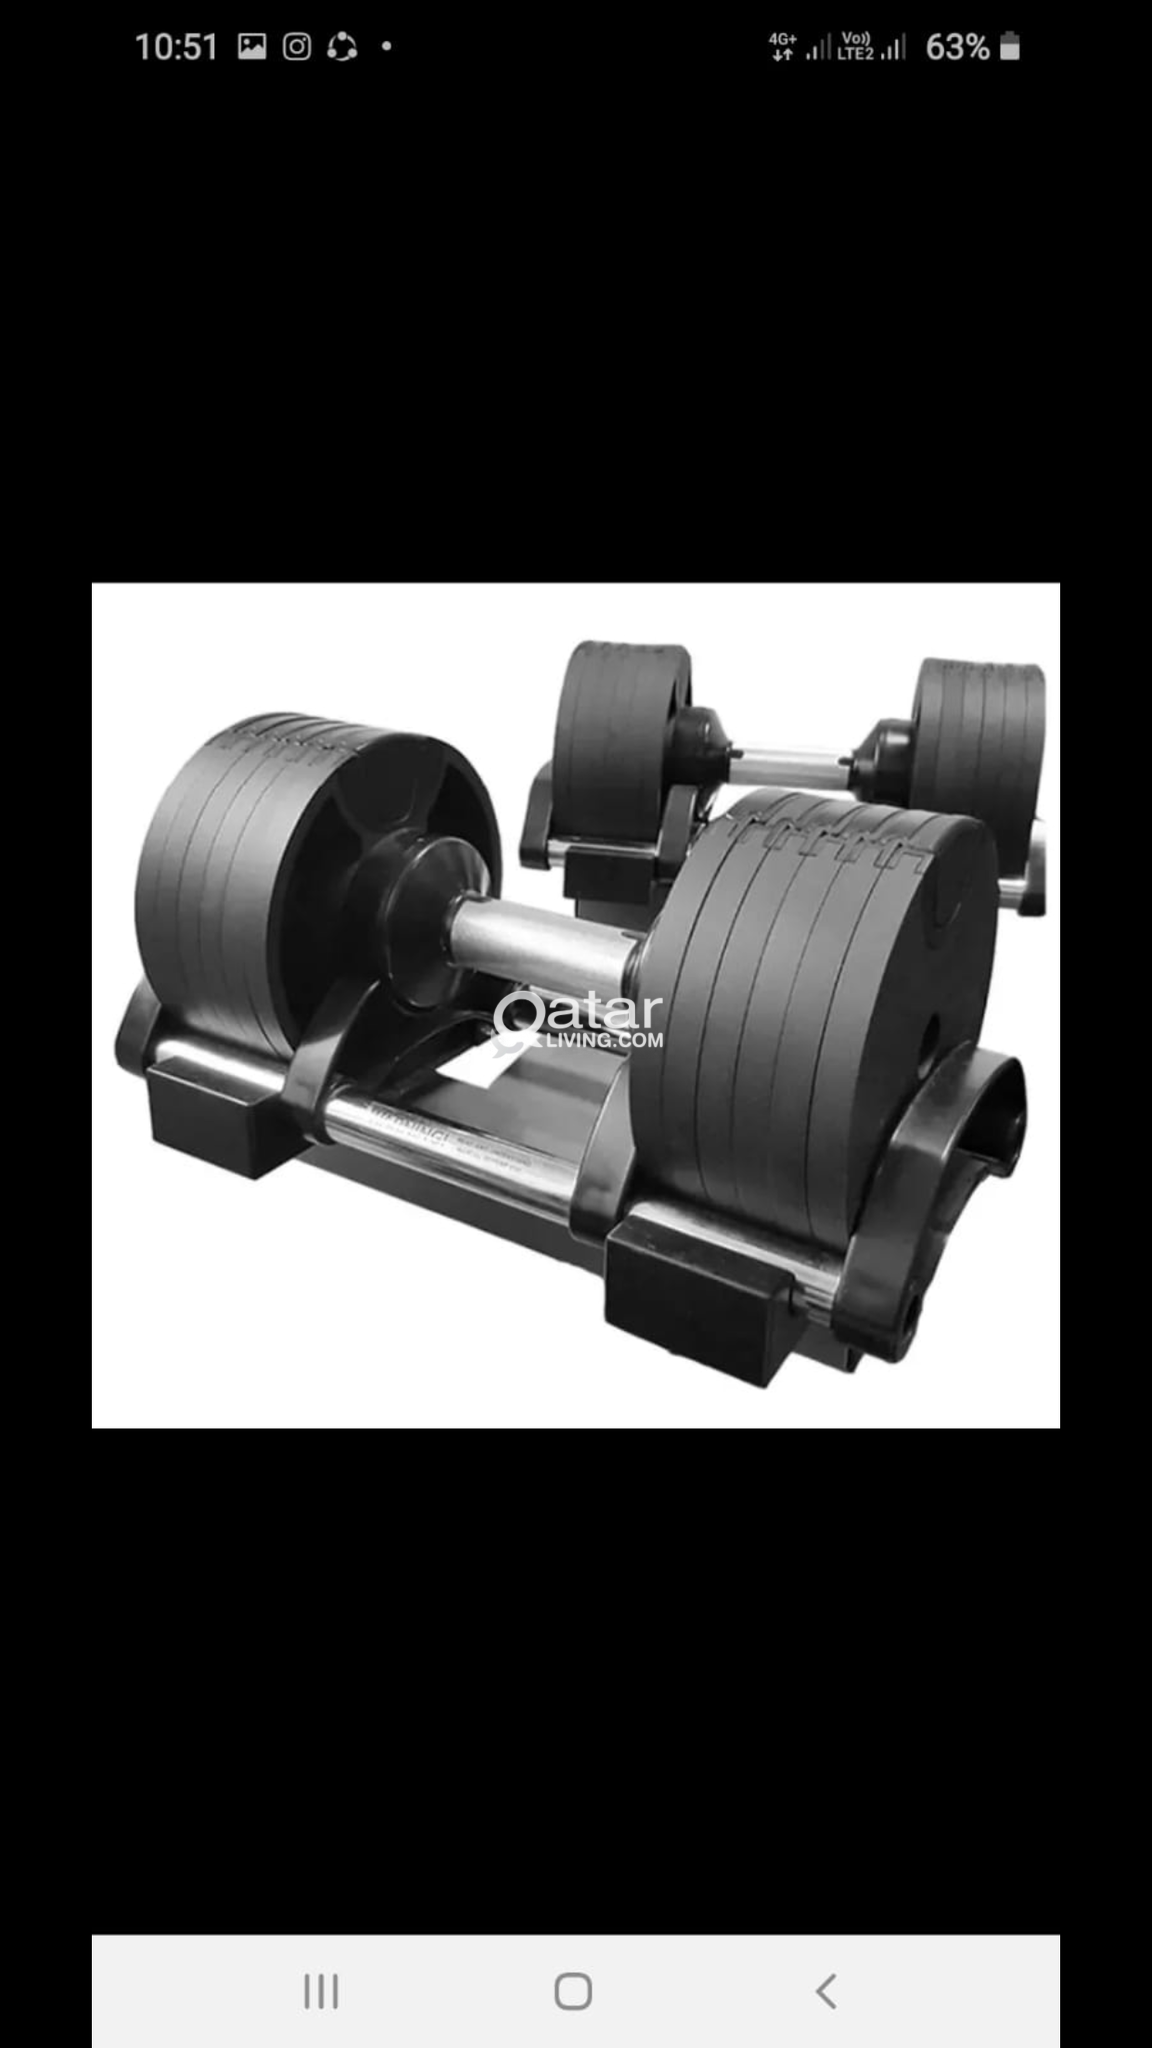 Adjustable Dumbbell 20kg each